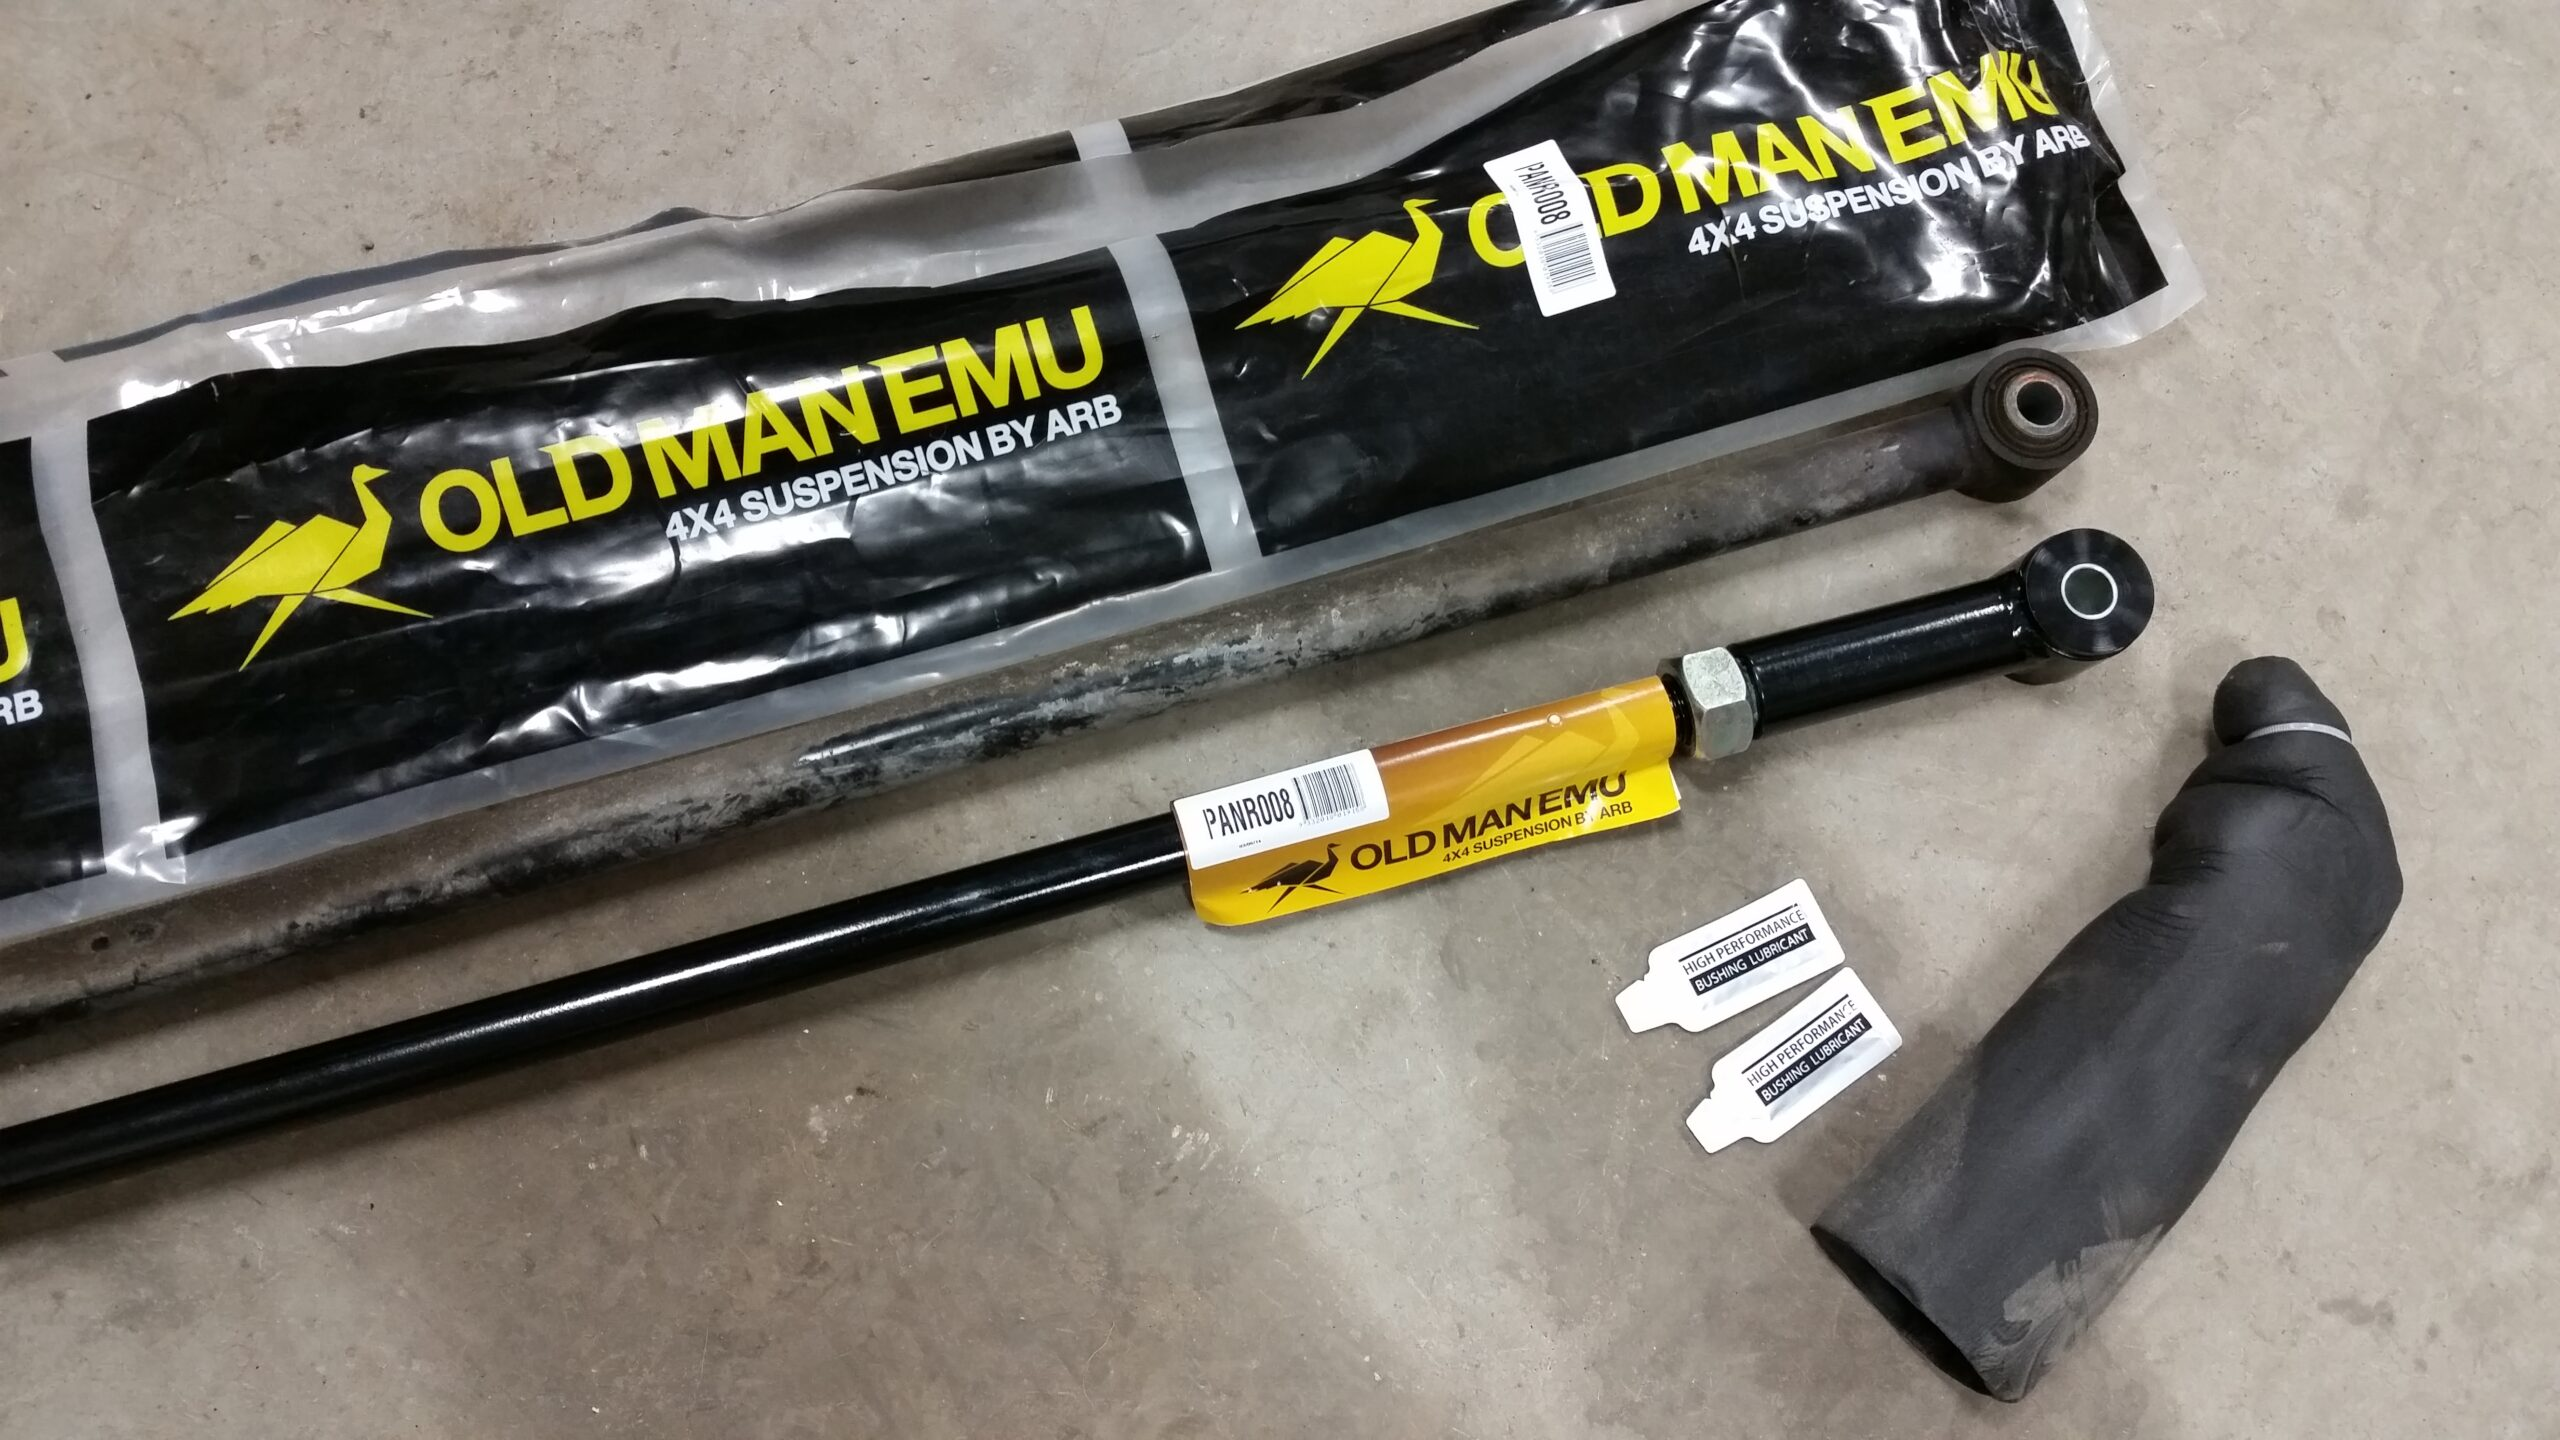 Old Man Emu Adjustable Panhards and Trailing Arms